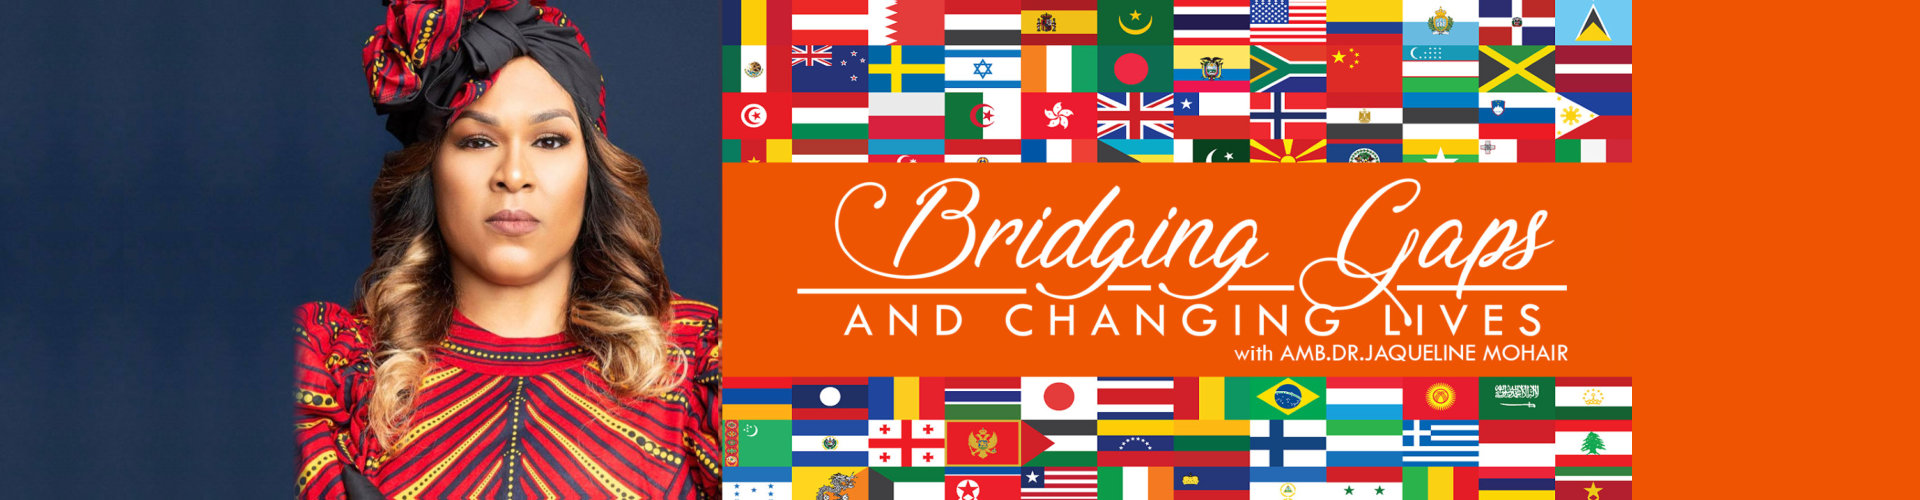 bridging gaps and changing live with dr jacqueline